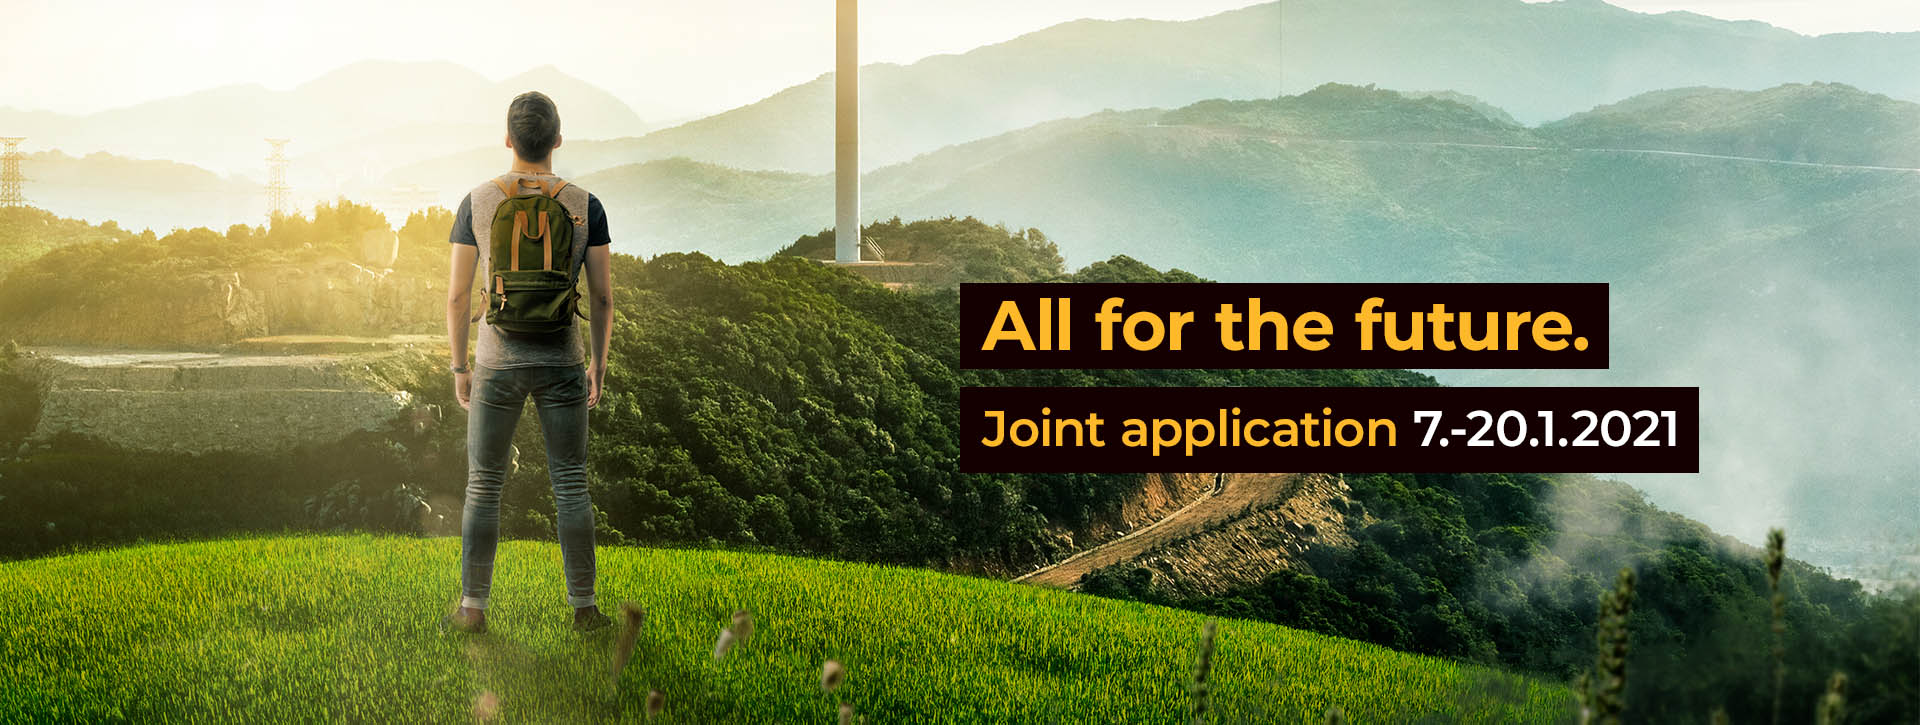 Joint application 7.-20.1.2021